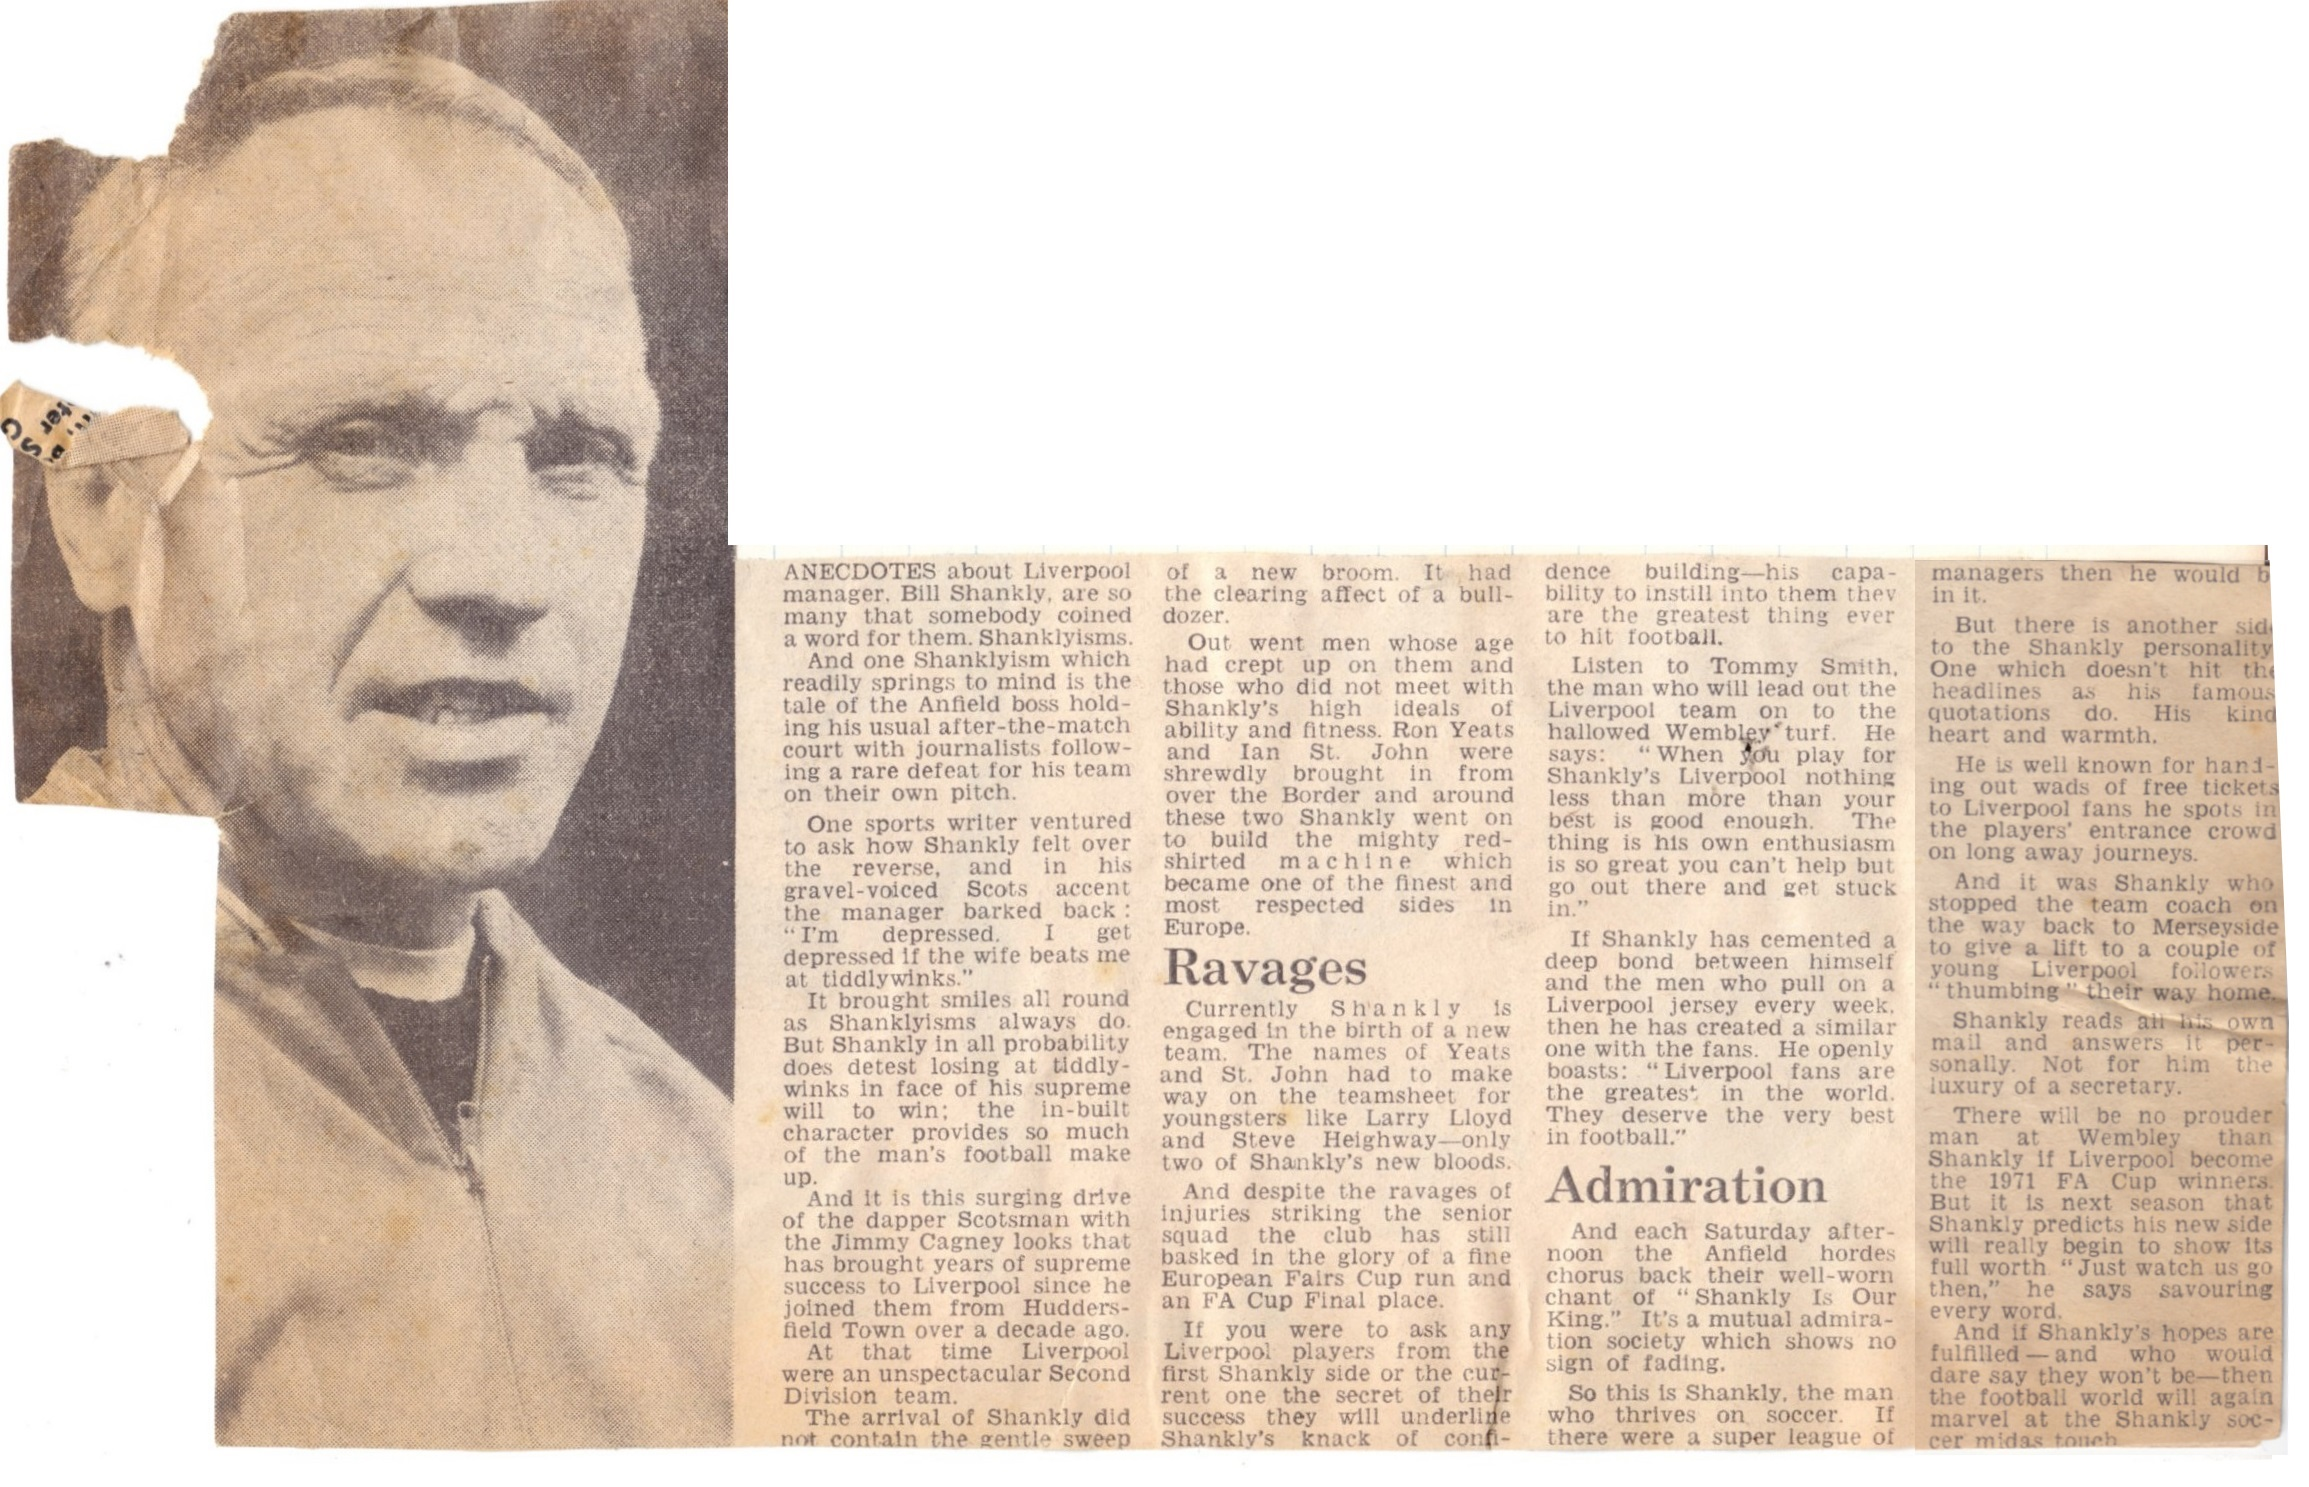 Shankly cleaned house - 8 May 1971